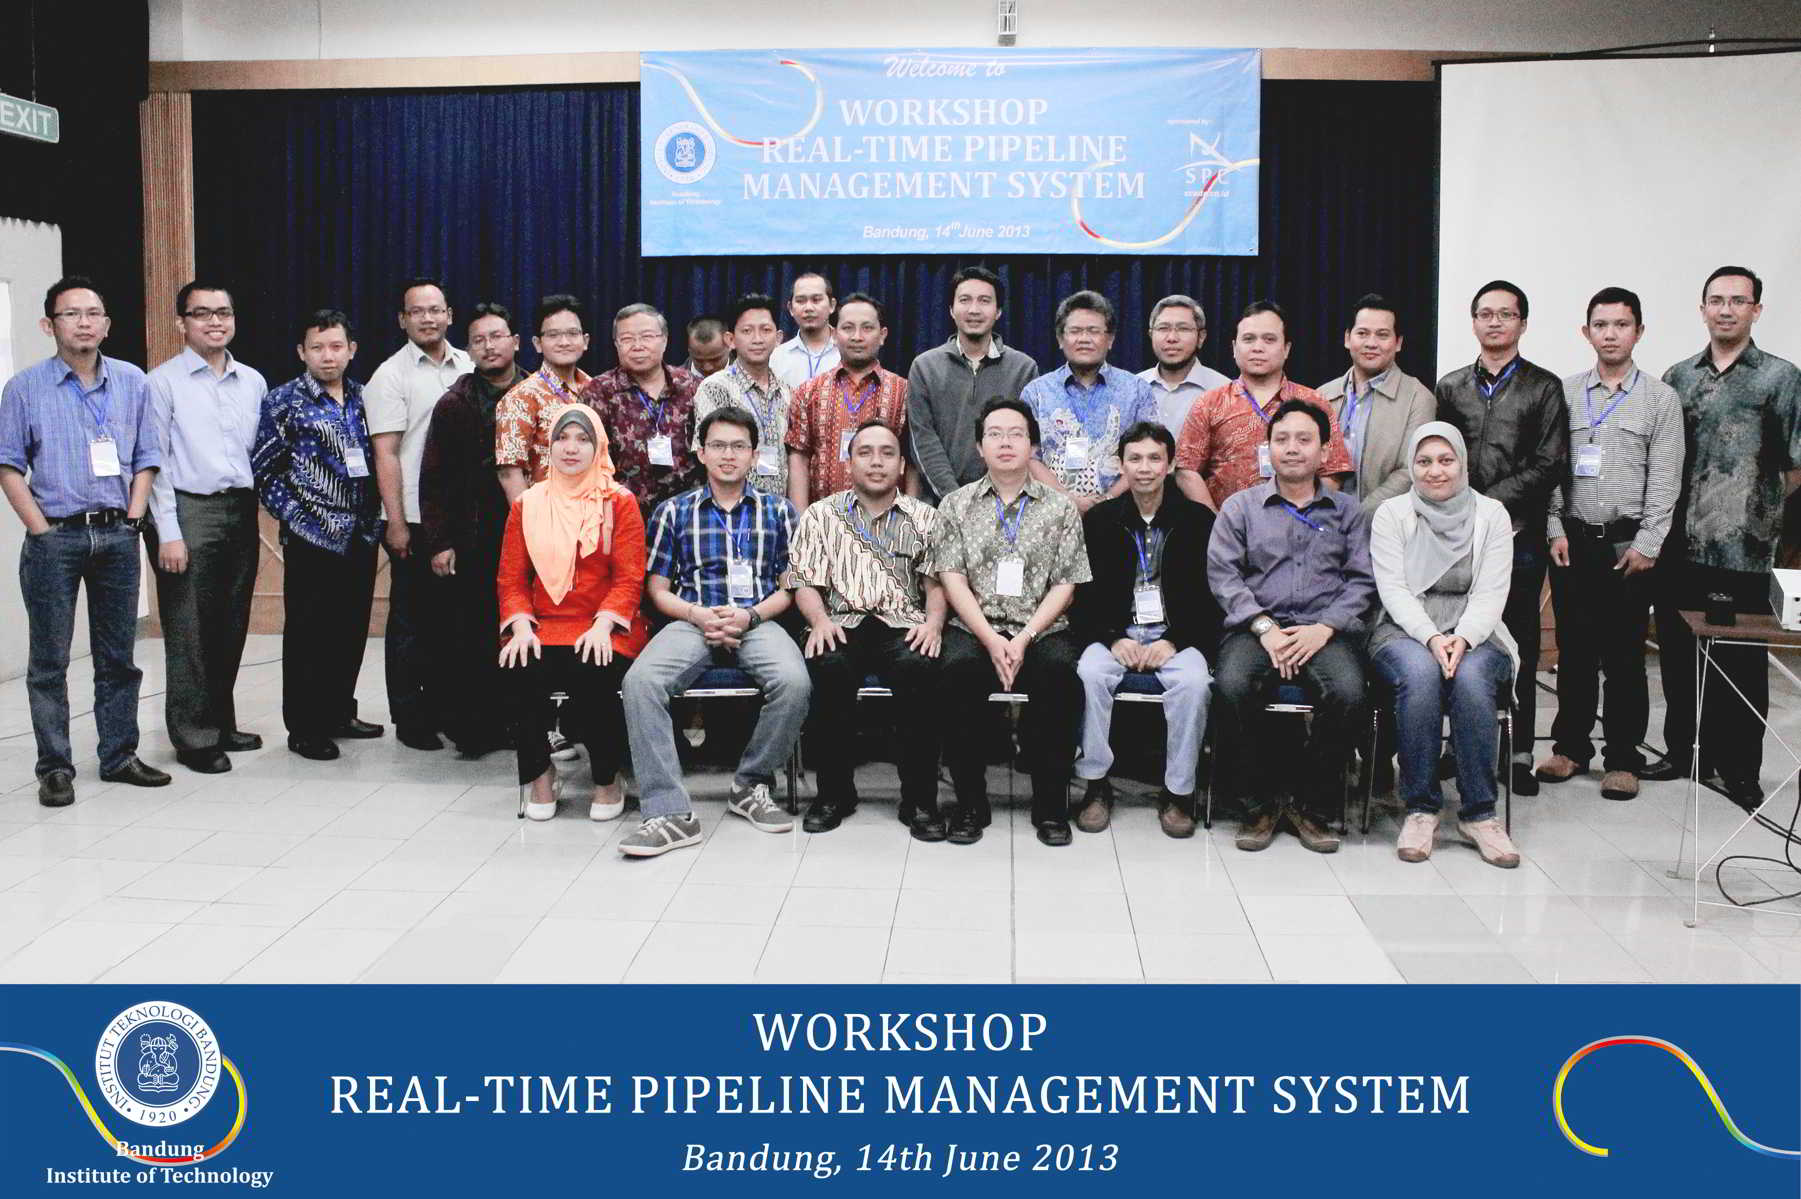 Real-Time Pipeline Management System